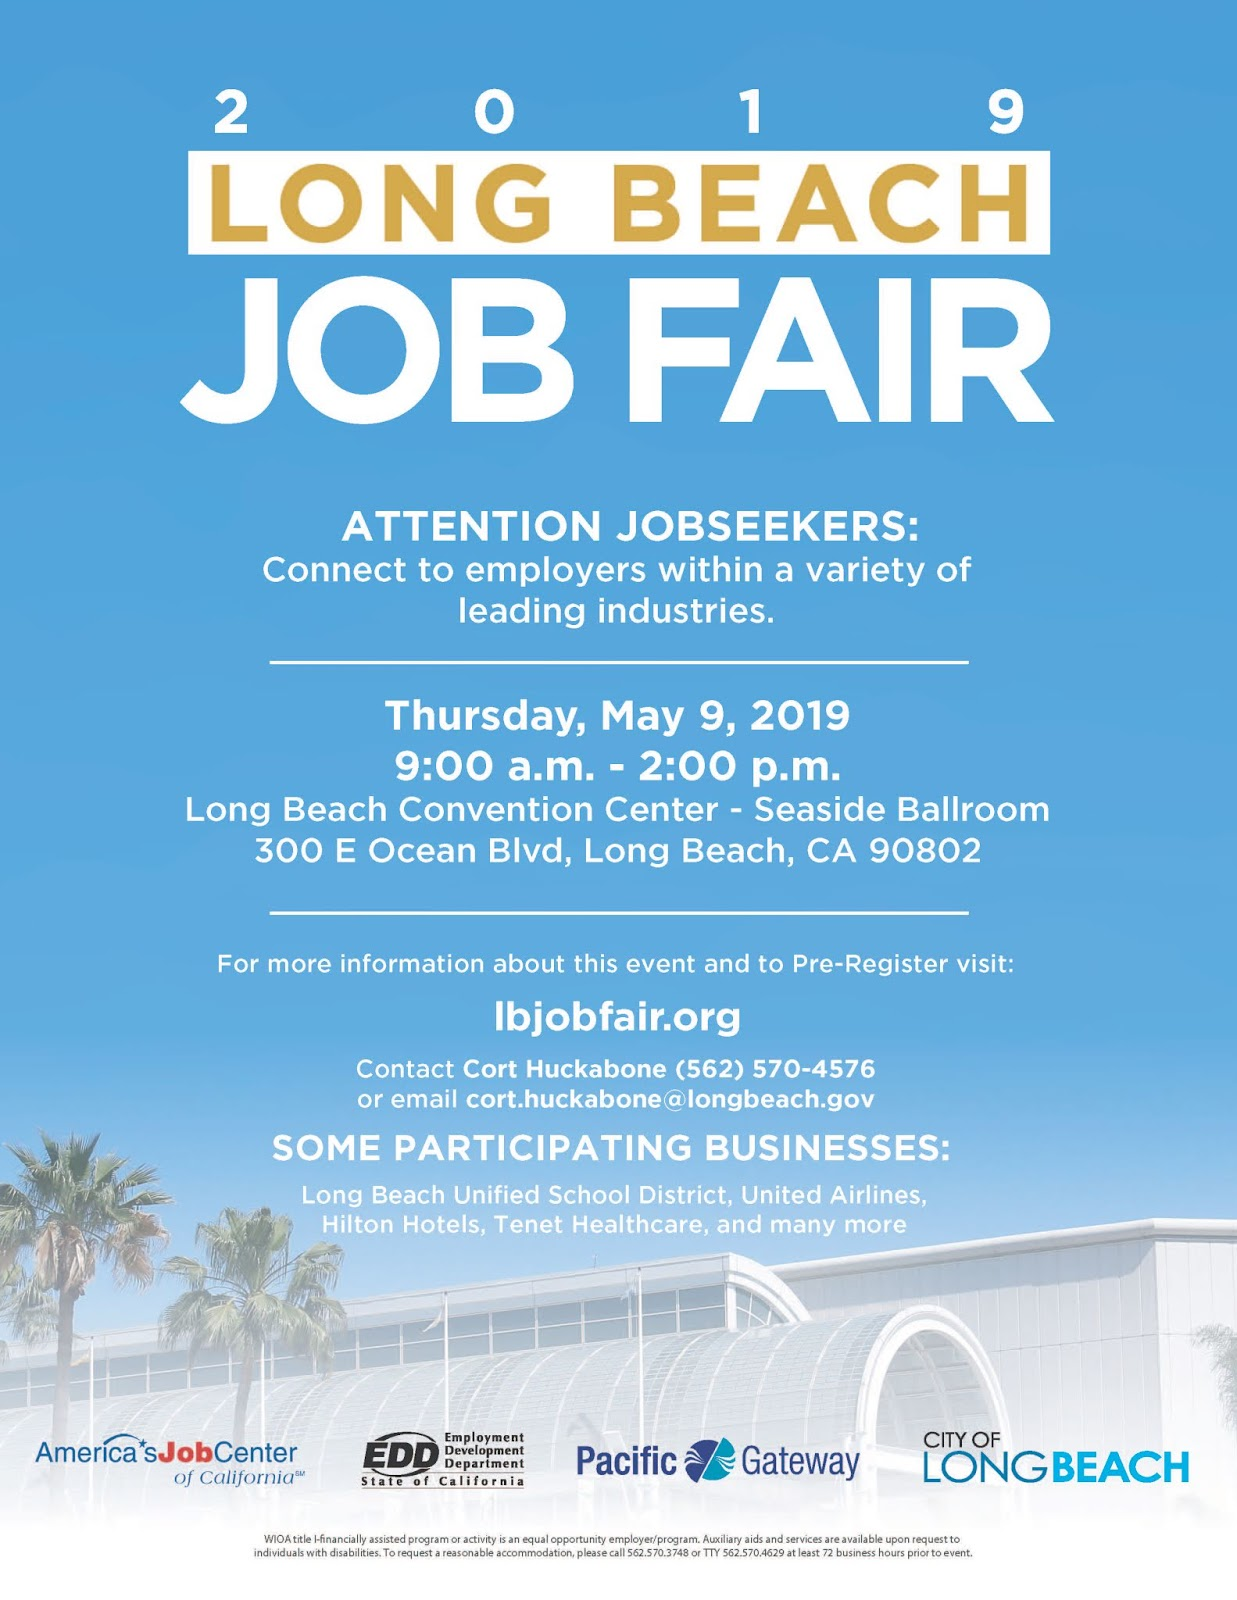 Military Civilian Hot Jobs Events And Helpful Information For Veterans Seeking Civilian Careers Long Beach Job Fair May 9 2019 9 A M 2 P M At The Long Beach Convention Center